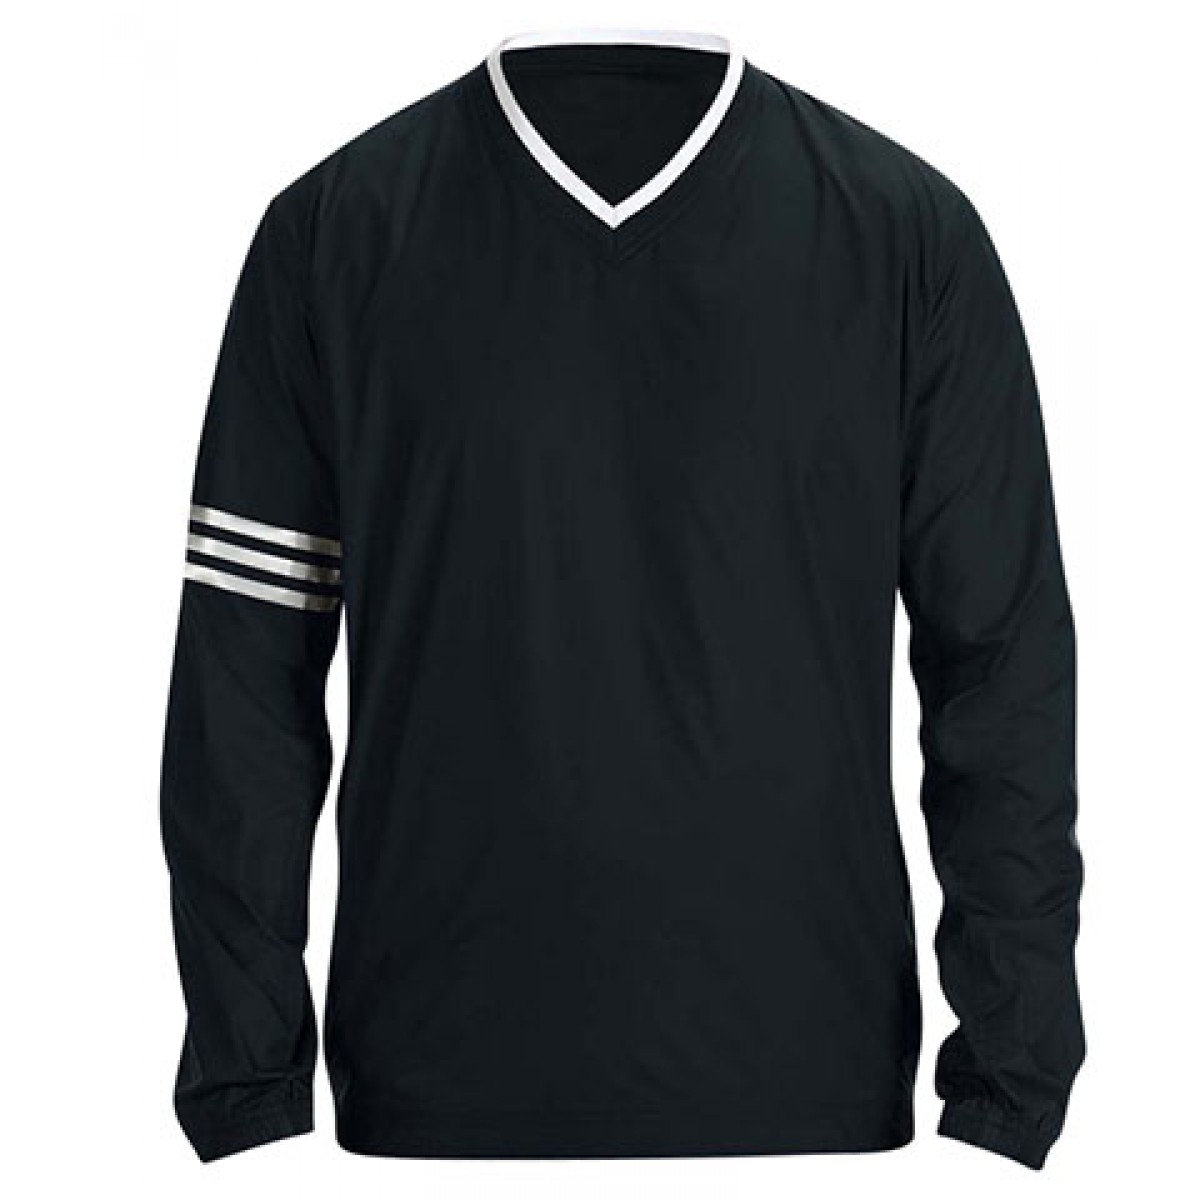 Adidas ClimaLite V-Neck Long Sleeve Wind Shirt-Black-XL